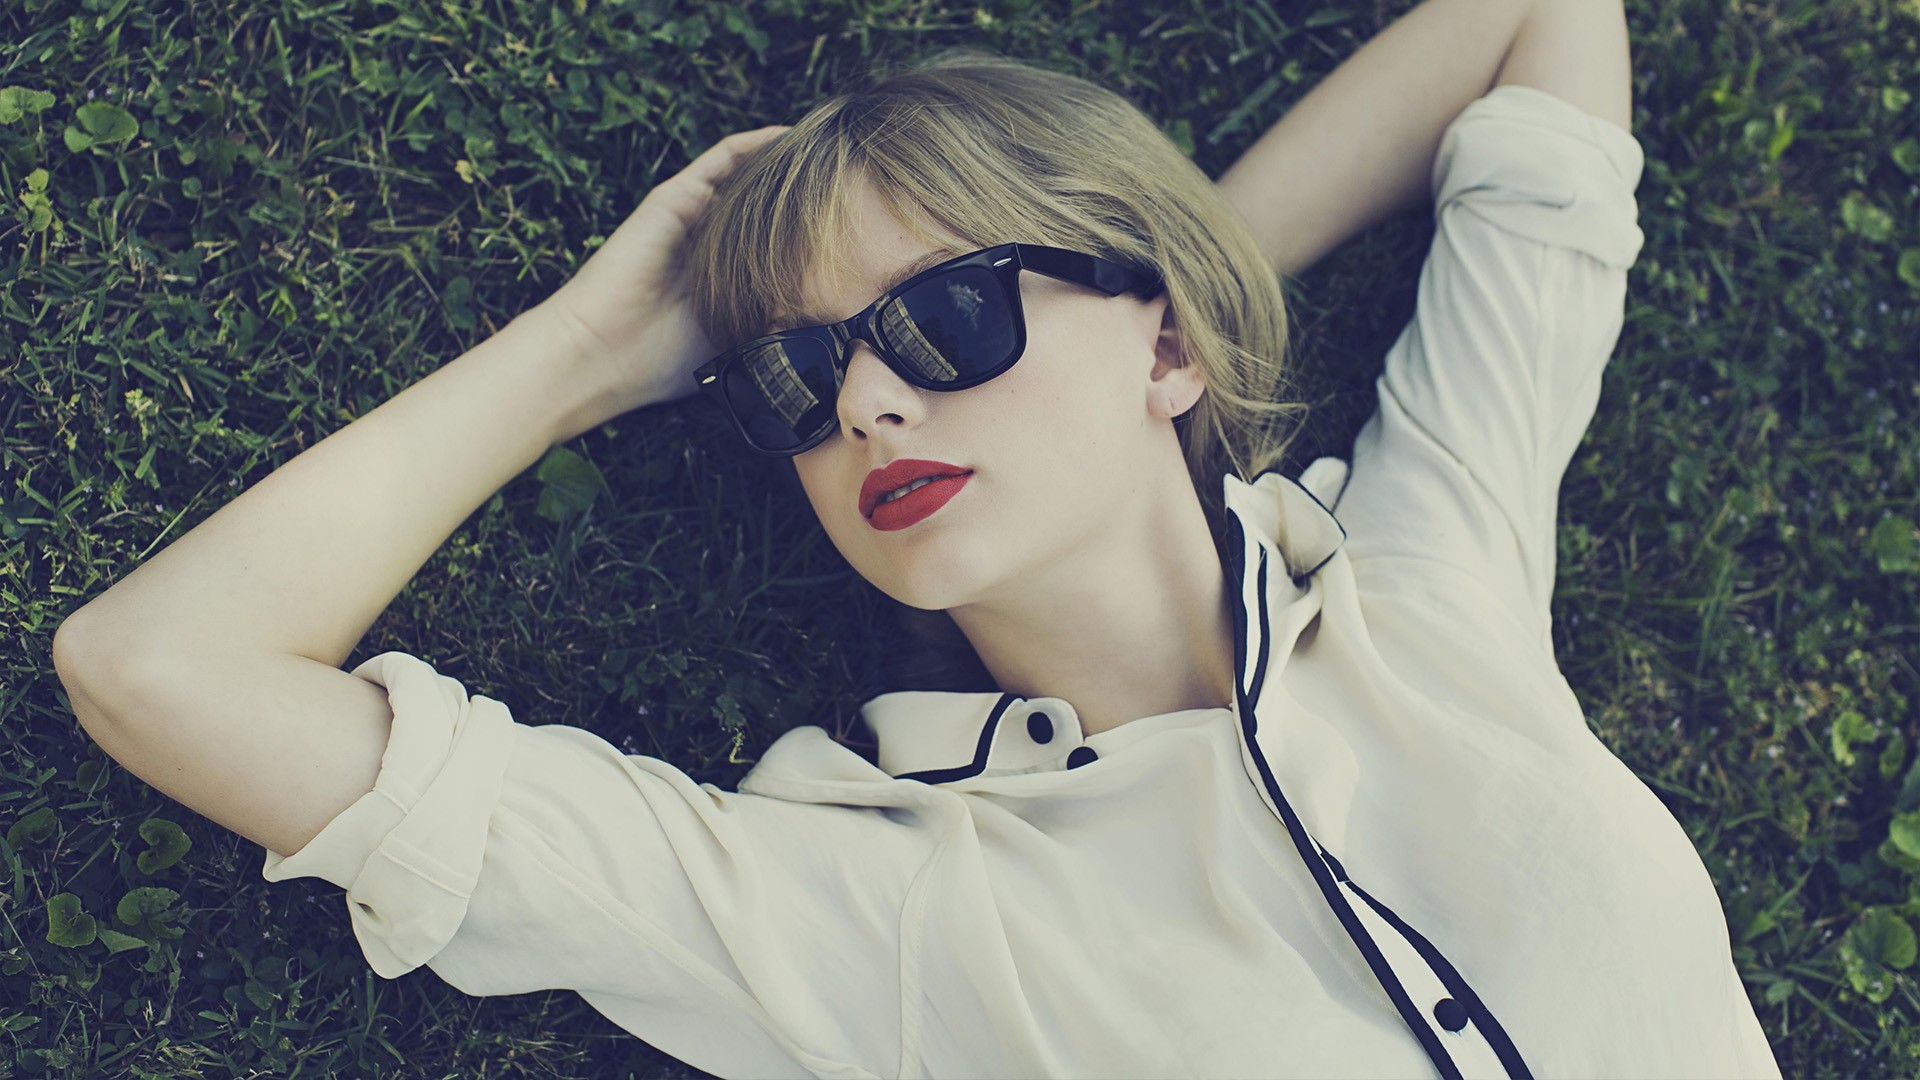 1400x1050 Taylor Swift Face Glasses 1400x1050 Resolution Wallpaper Hd Celebrities 4k Wallpapers Images Photos And Background